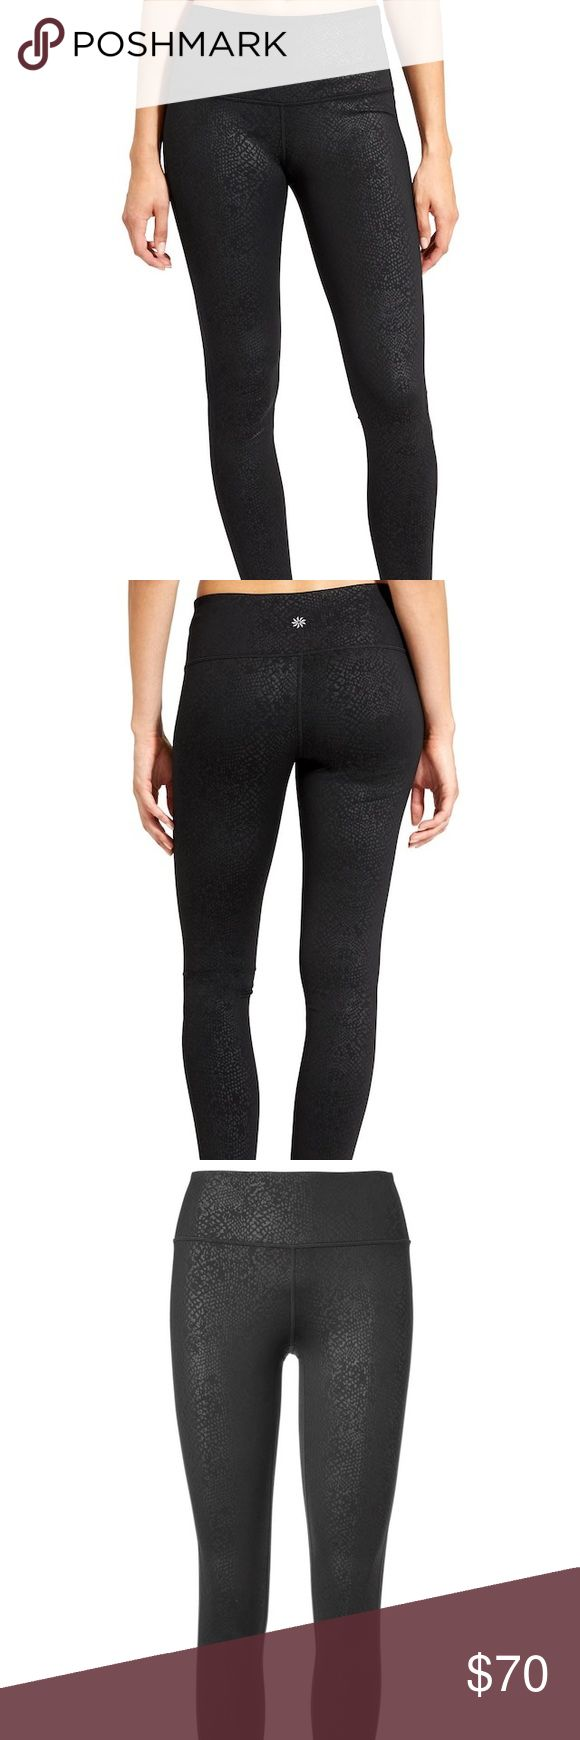 Black High Rise Serpent Chaturanga™ Tight NWOT! Make and offer.Black Athelta full length legging tight. Our go-to tight for yoga and studio workouts comes in a high-rise fit for a triple dose of performance: keeps everything tucked in, offers a secure, stay-put fit, and creates the longest, leggiest look. INSPIRED FOR: yoga, studio workouts, adventure To Fro UNPINCHABLE WAISTBAND. 3-layer inner mesh construction smooths over your midsection for a no-muffin-top zone Flatlock seams minimize…